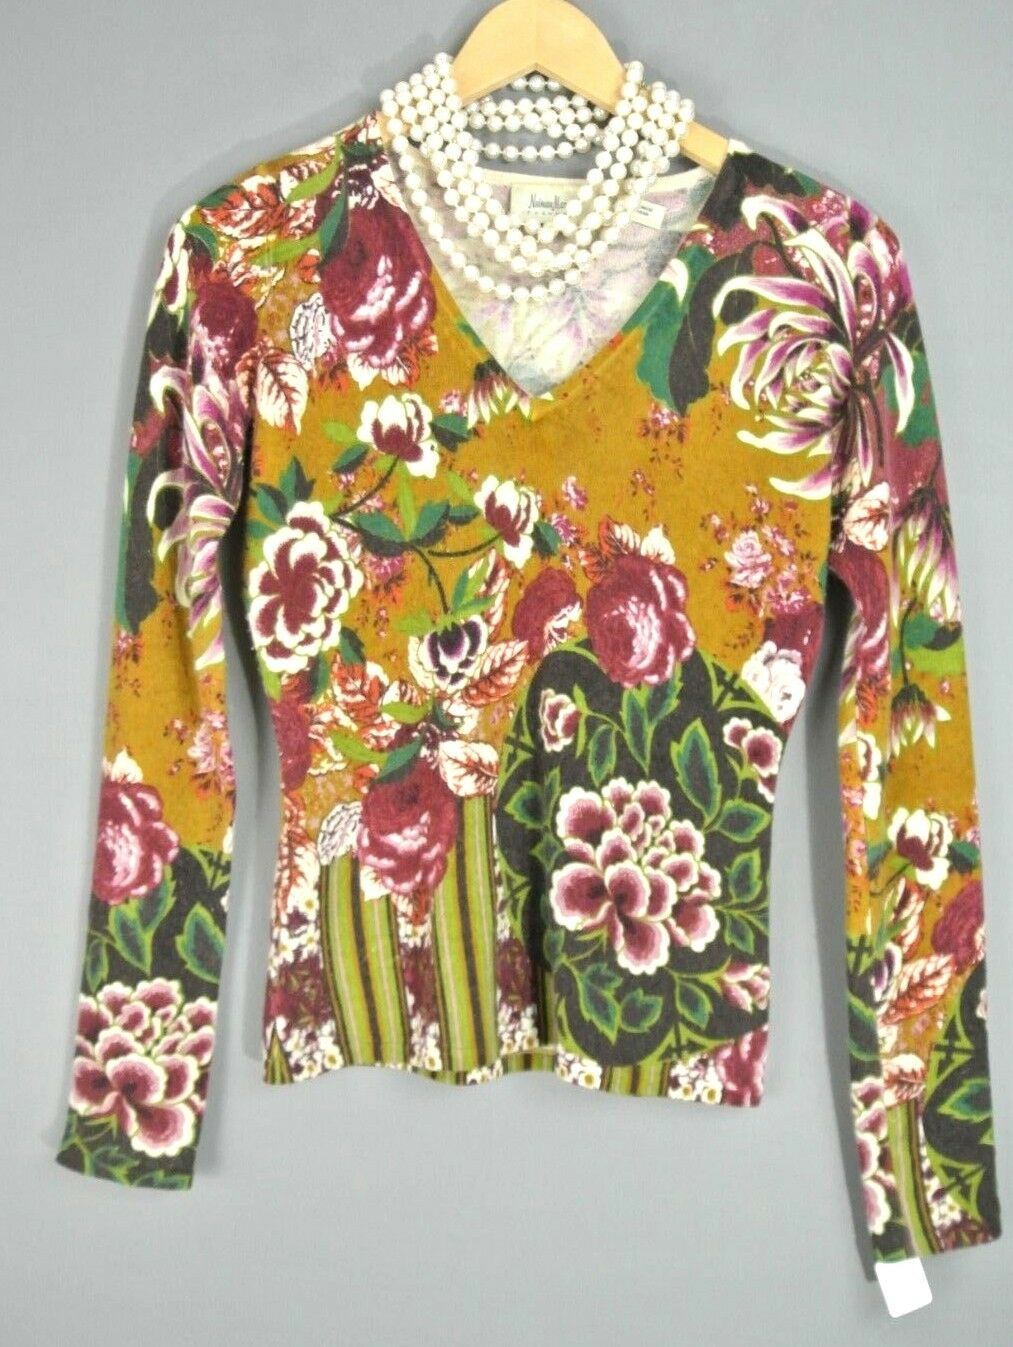 Newman Marcus Cashmere Knit Floral Womens Sweater Top Brown XS Multi color 1008